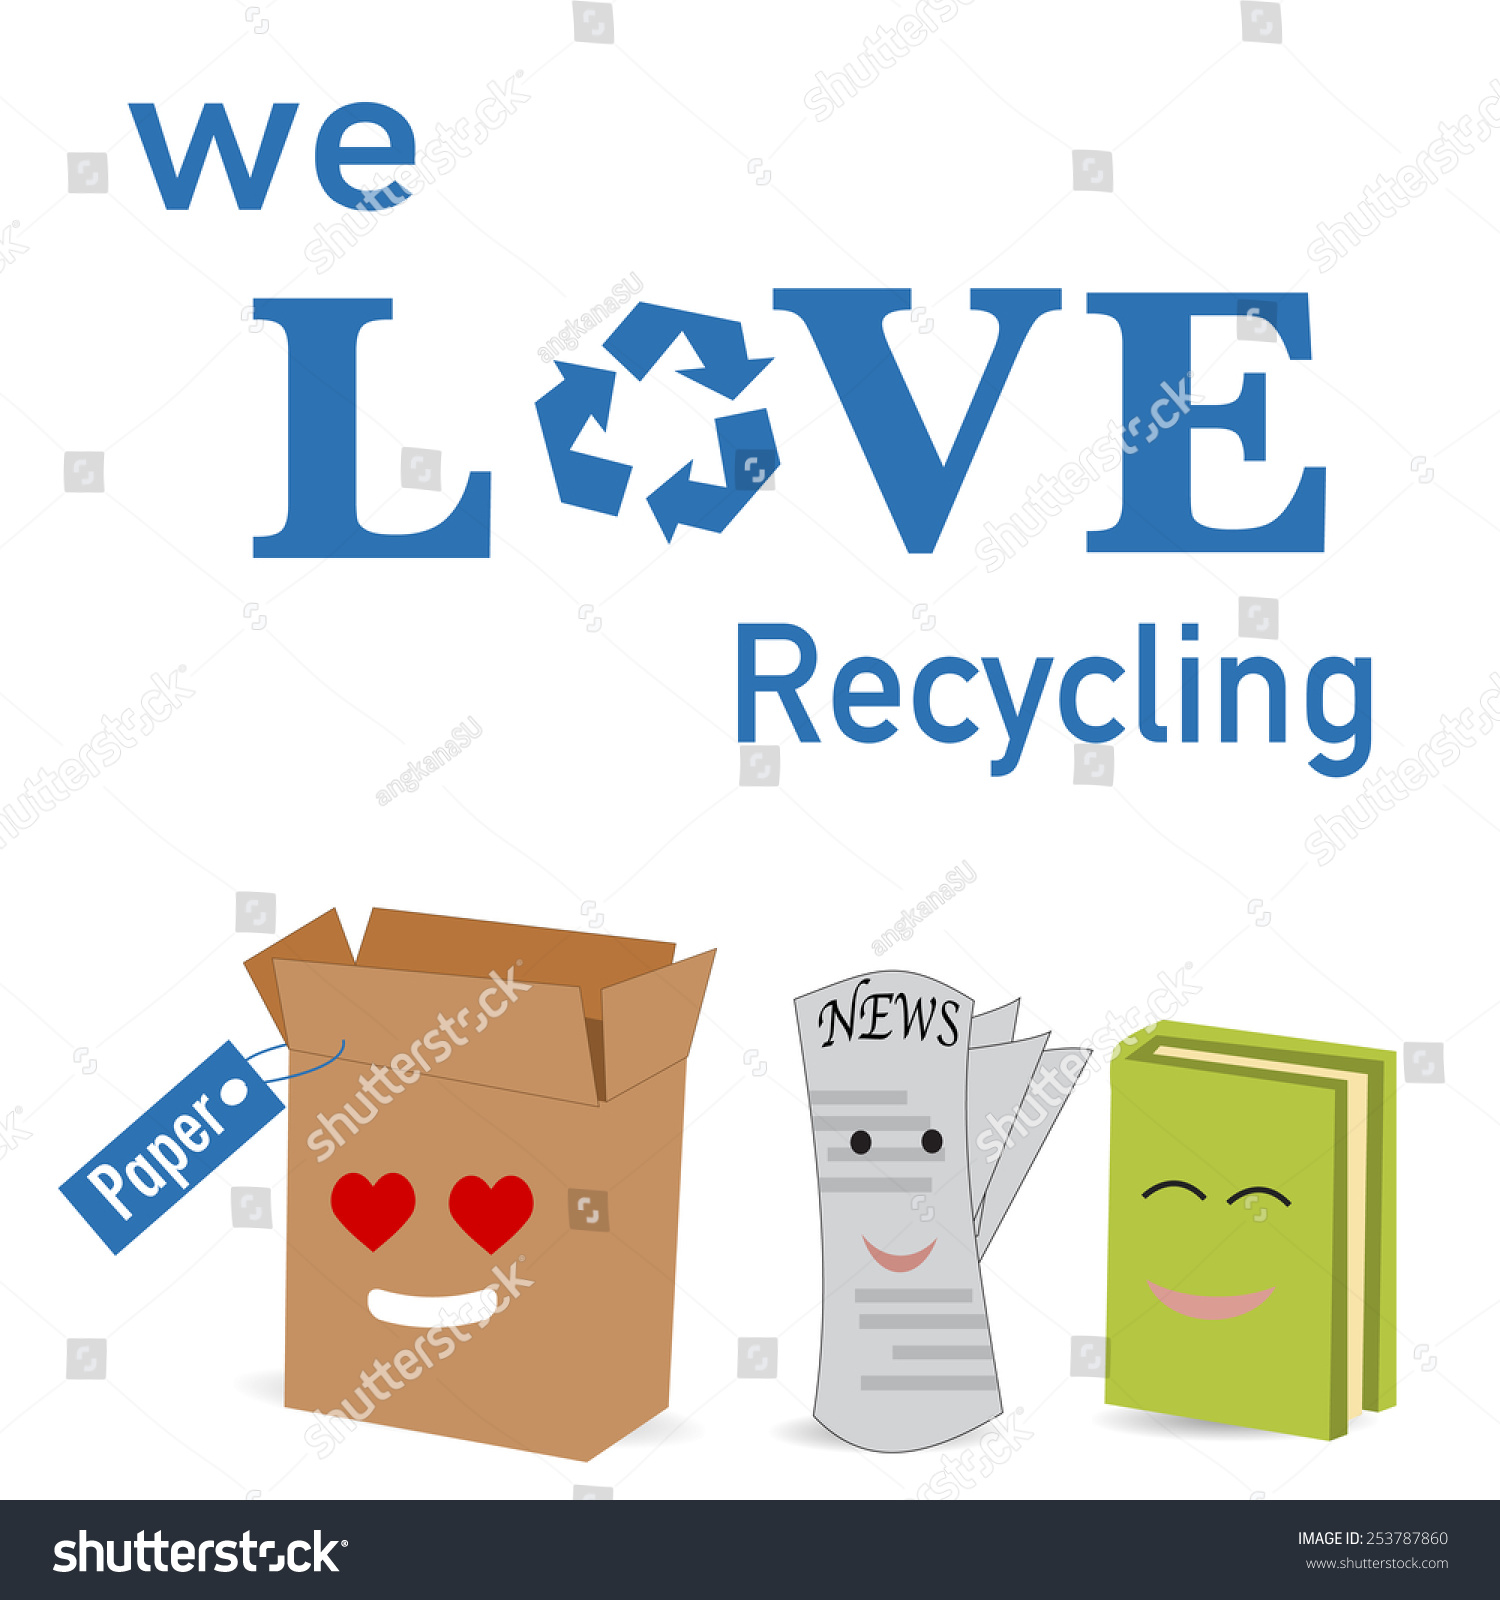 Paper Recycle Poster Stock Vector 253787860 - Shutterstock